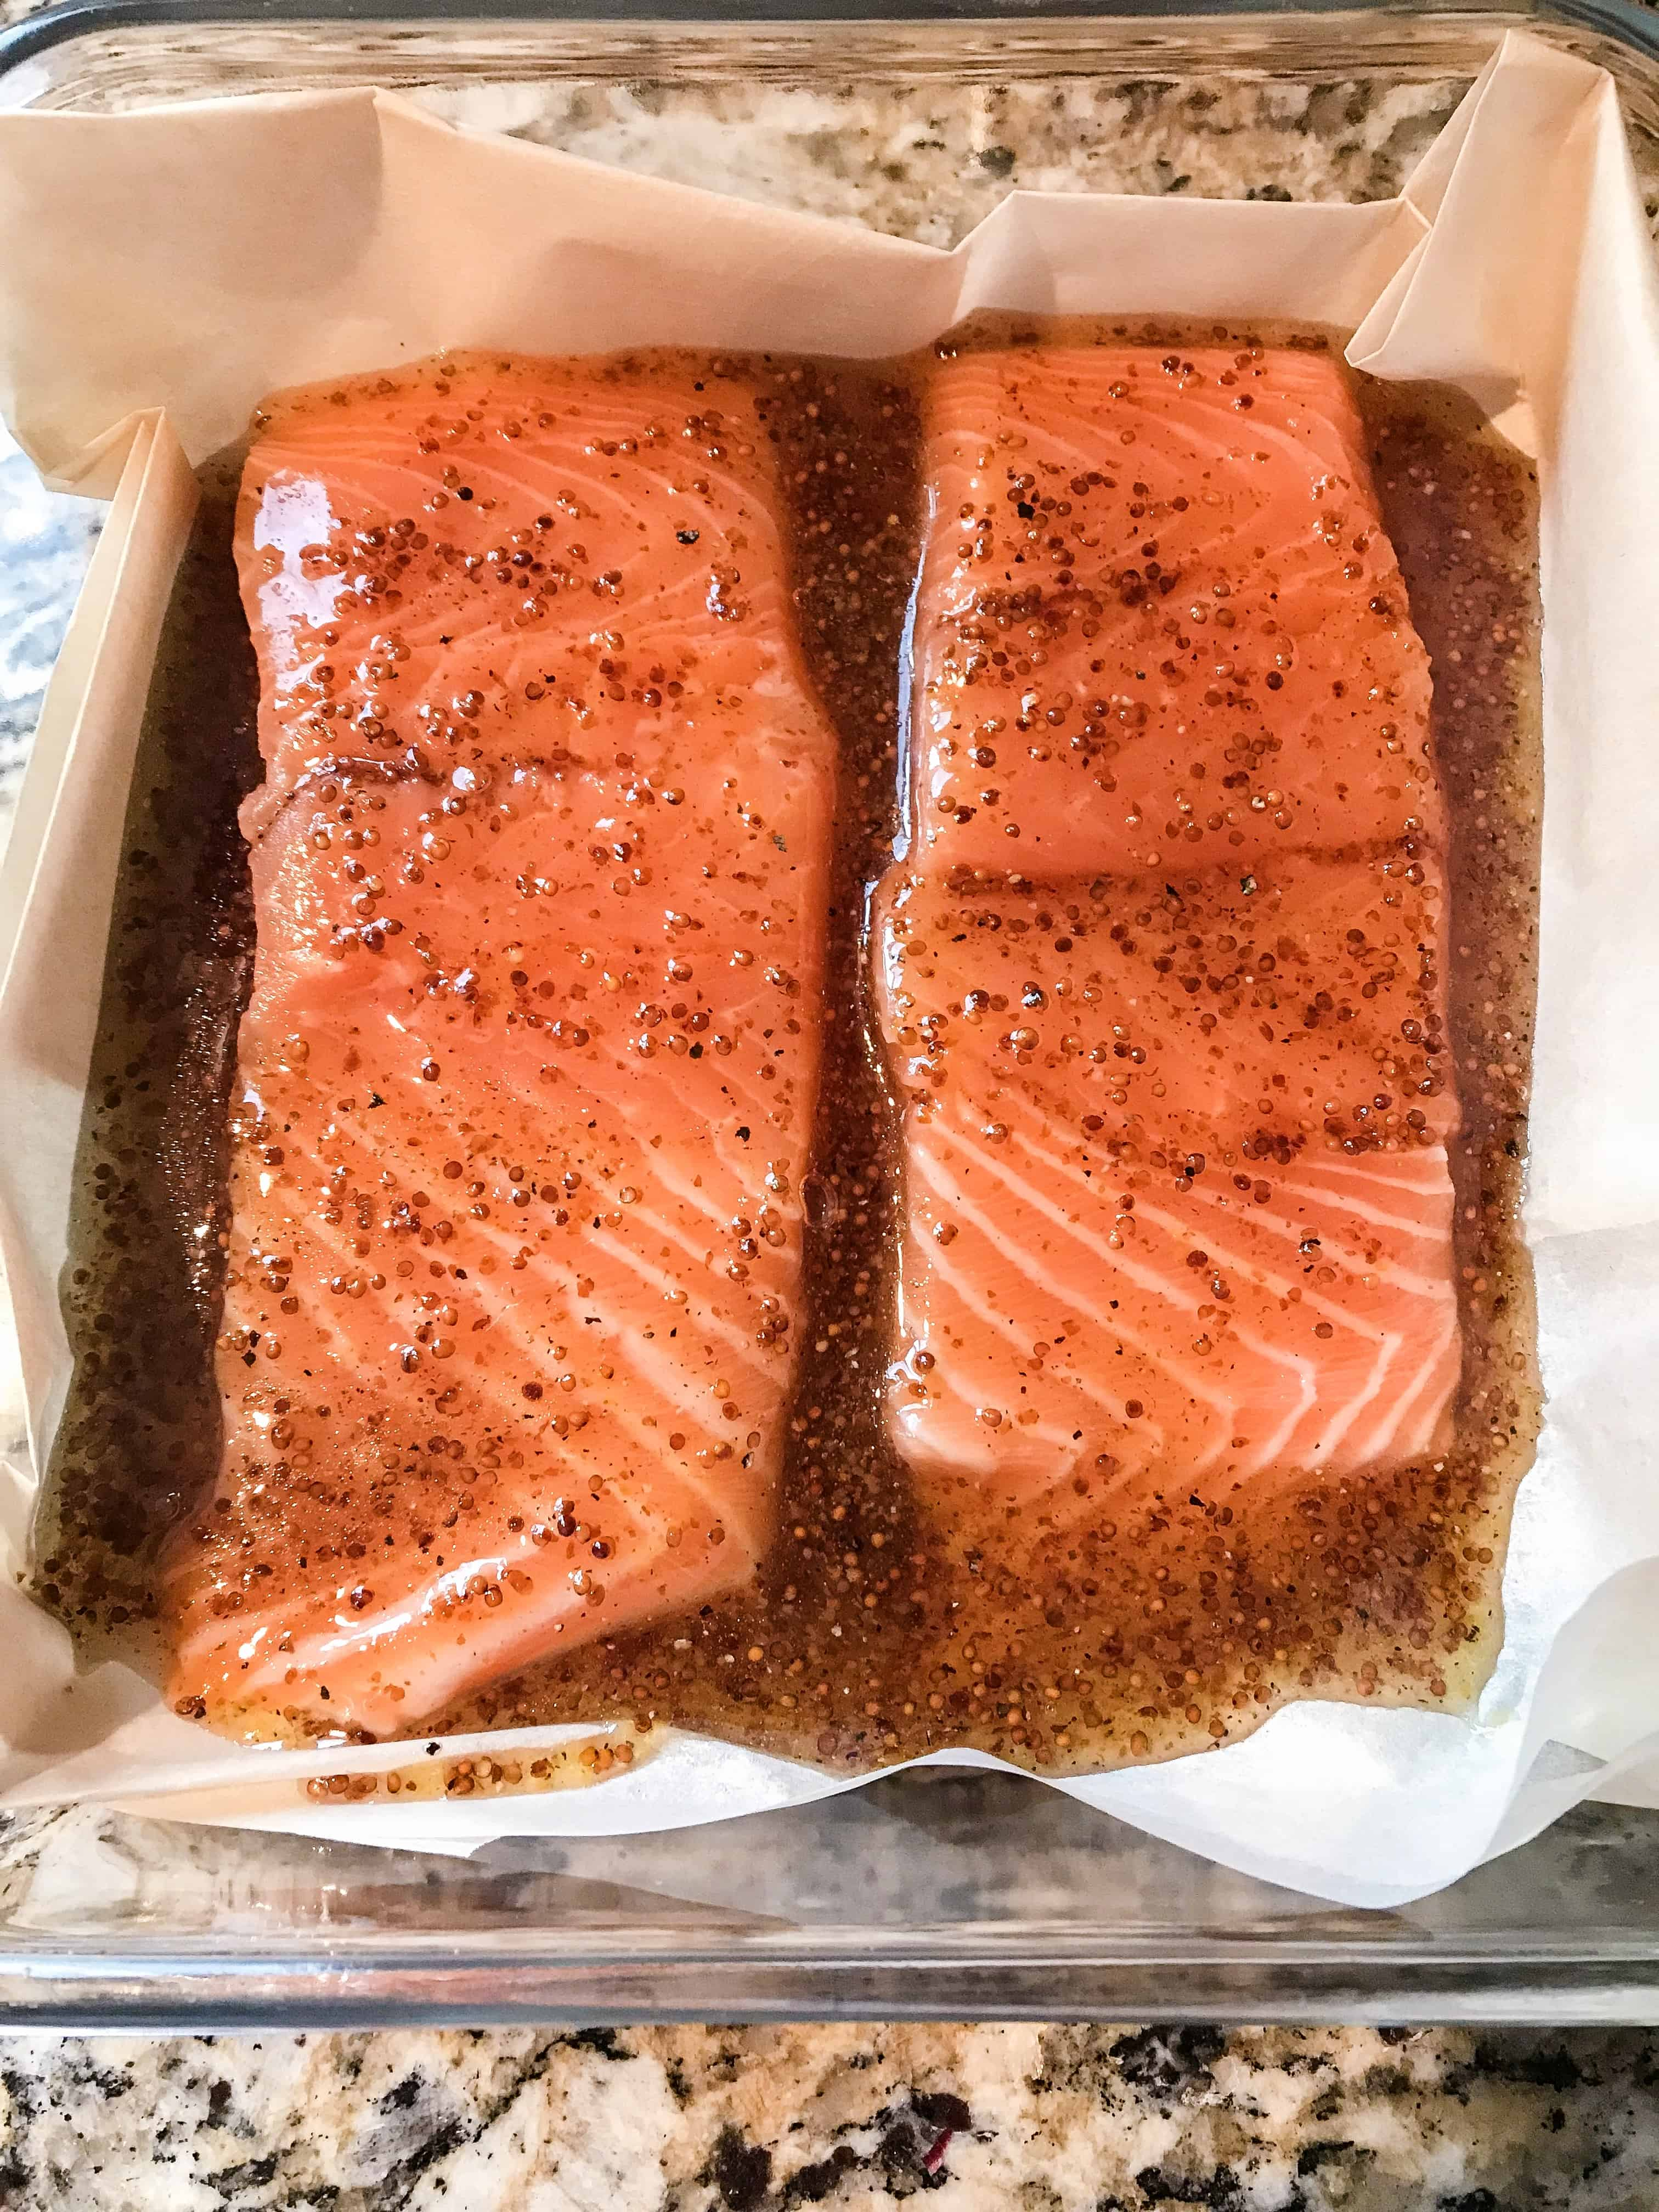 Uncooked honey dijon salmon in a baking dish, smothered in the honey dijon sauce